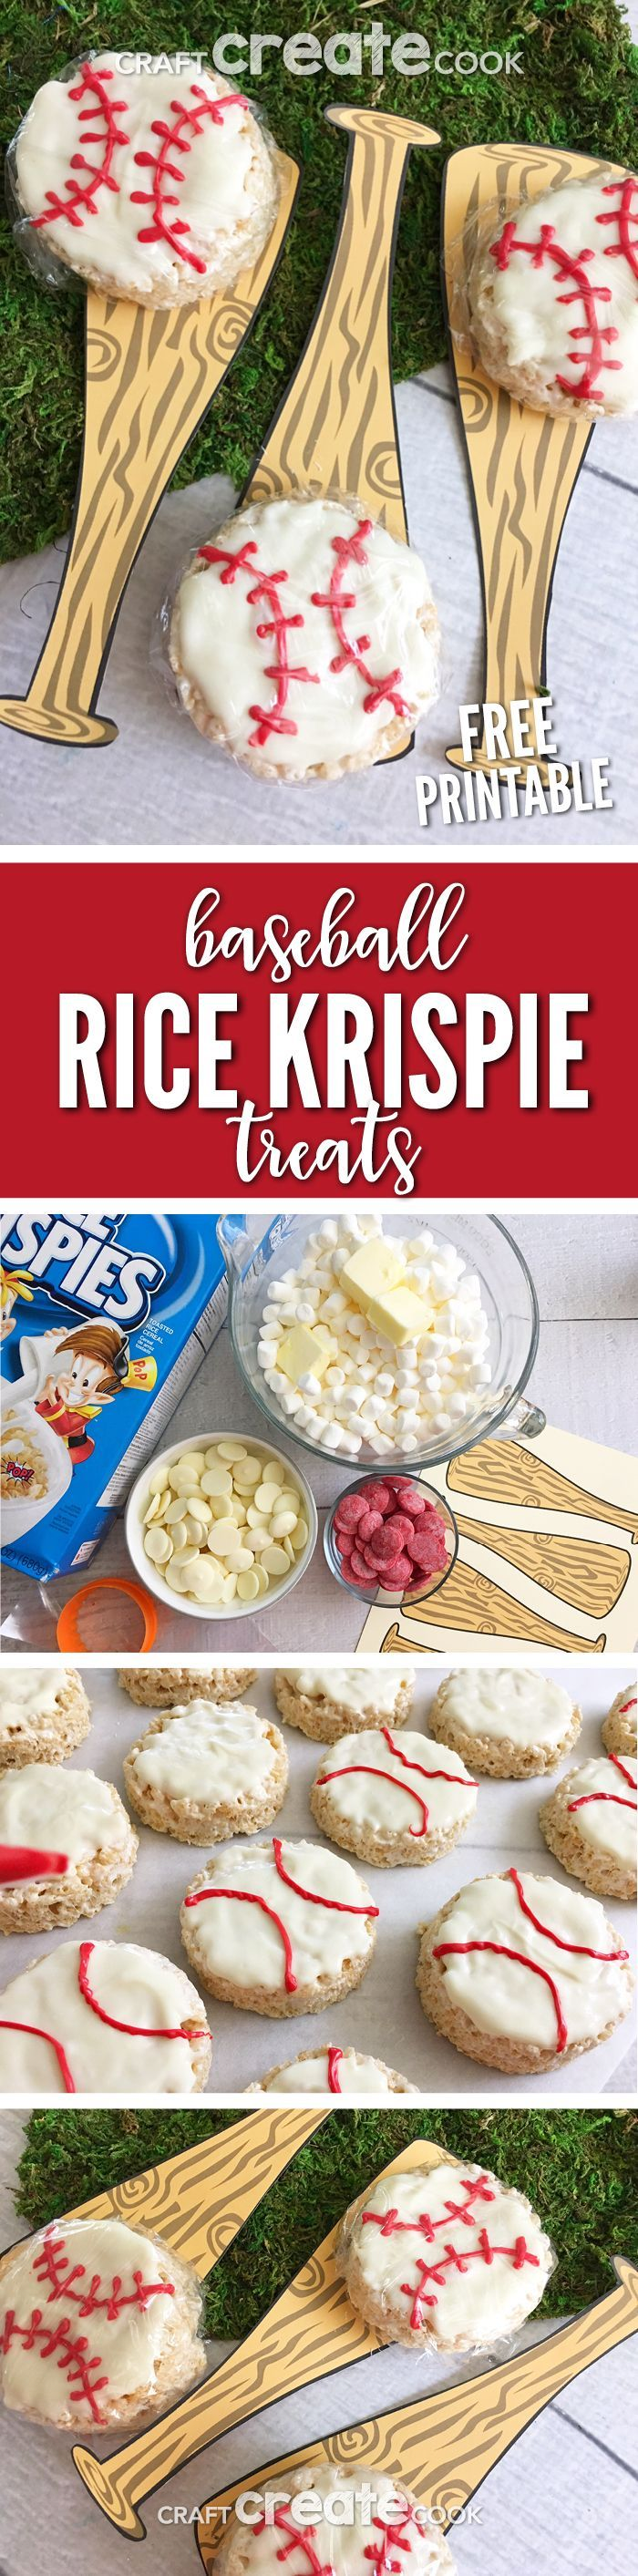 These Baseball Rice Krispie Treats are easy to make and have a free printable to go along. via @CraftCreatCook1